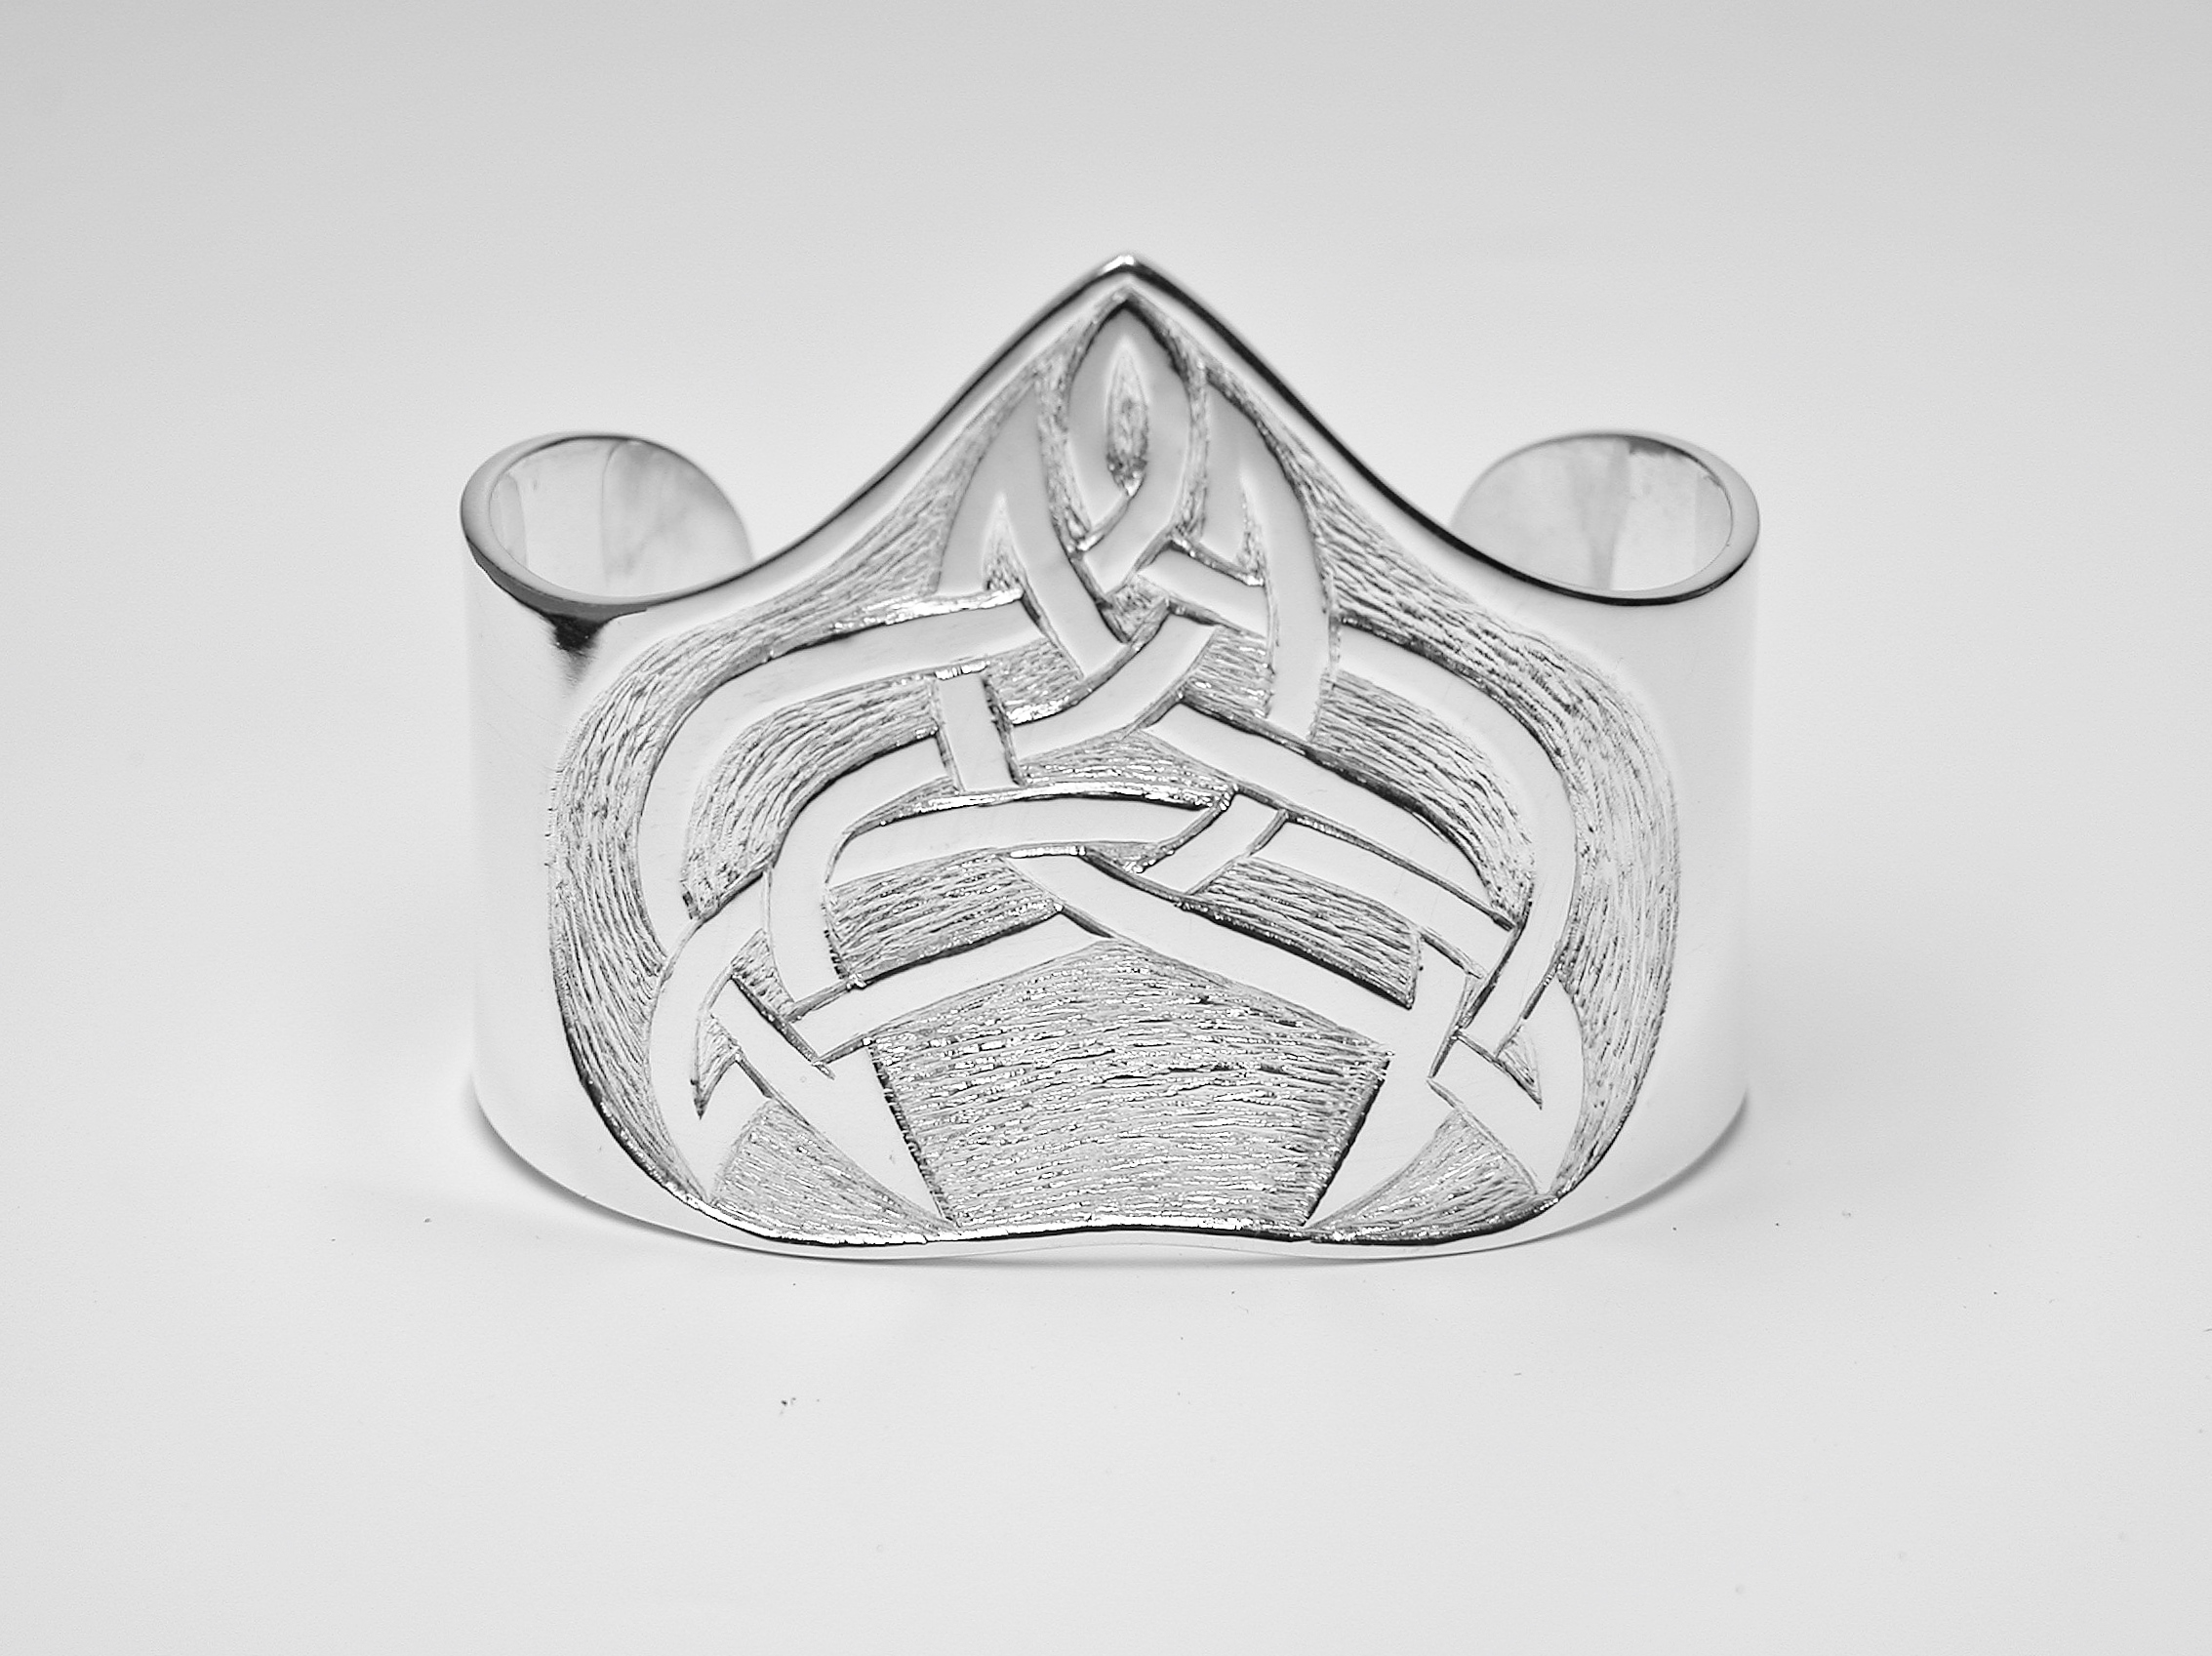 Sterling silver broad cuff torque bangle hand carved with an original Celtic designed pattern.